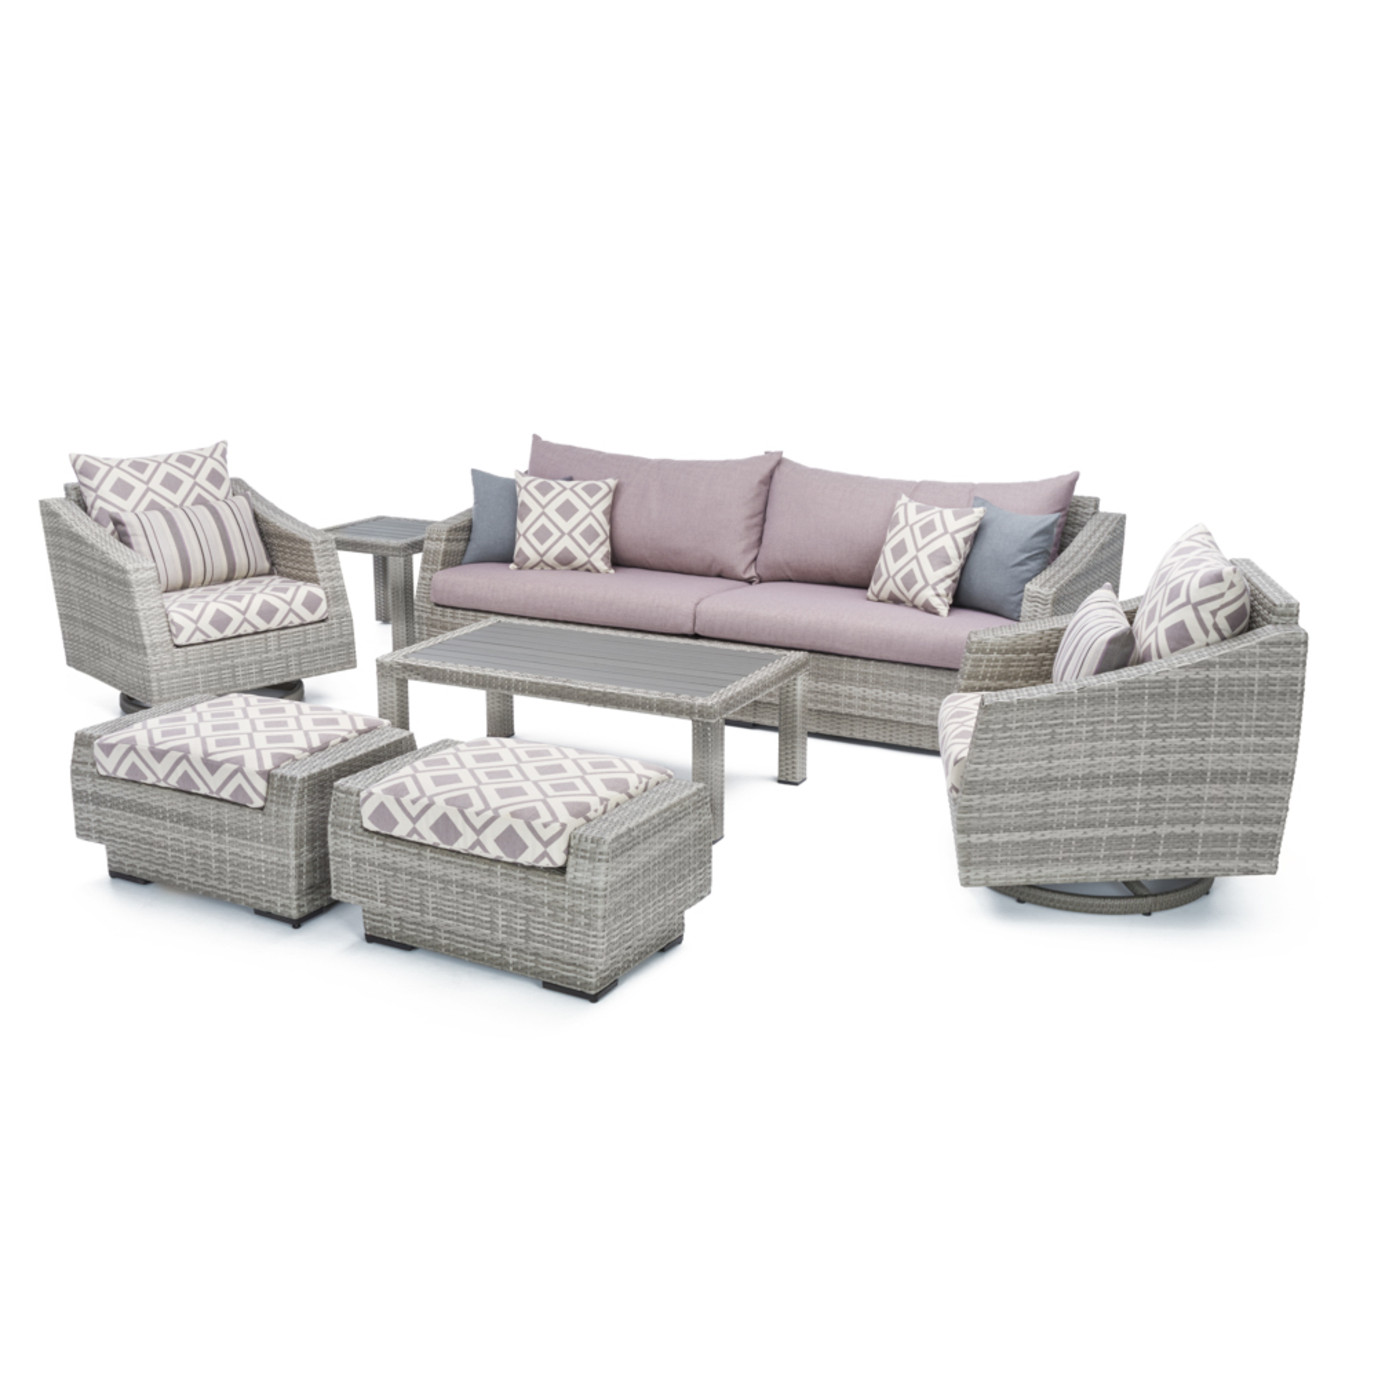 Cannes™ Deluxe 8pc Sofa & Club Chair Set - Wisteria Lavender